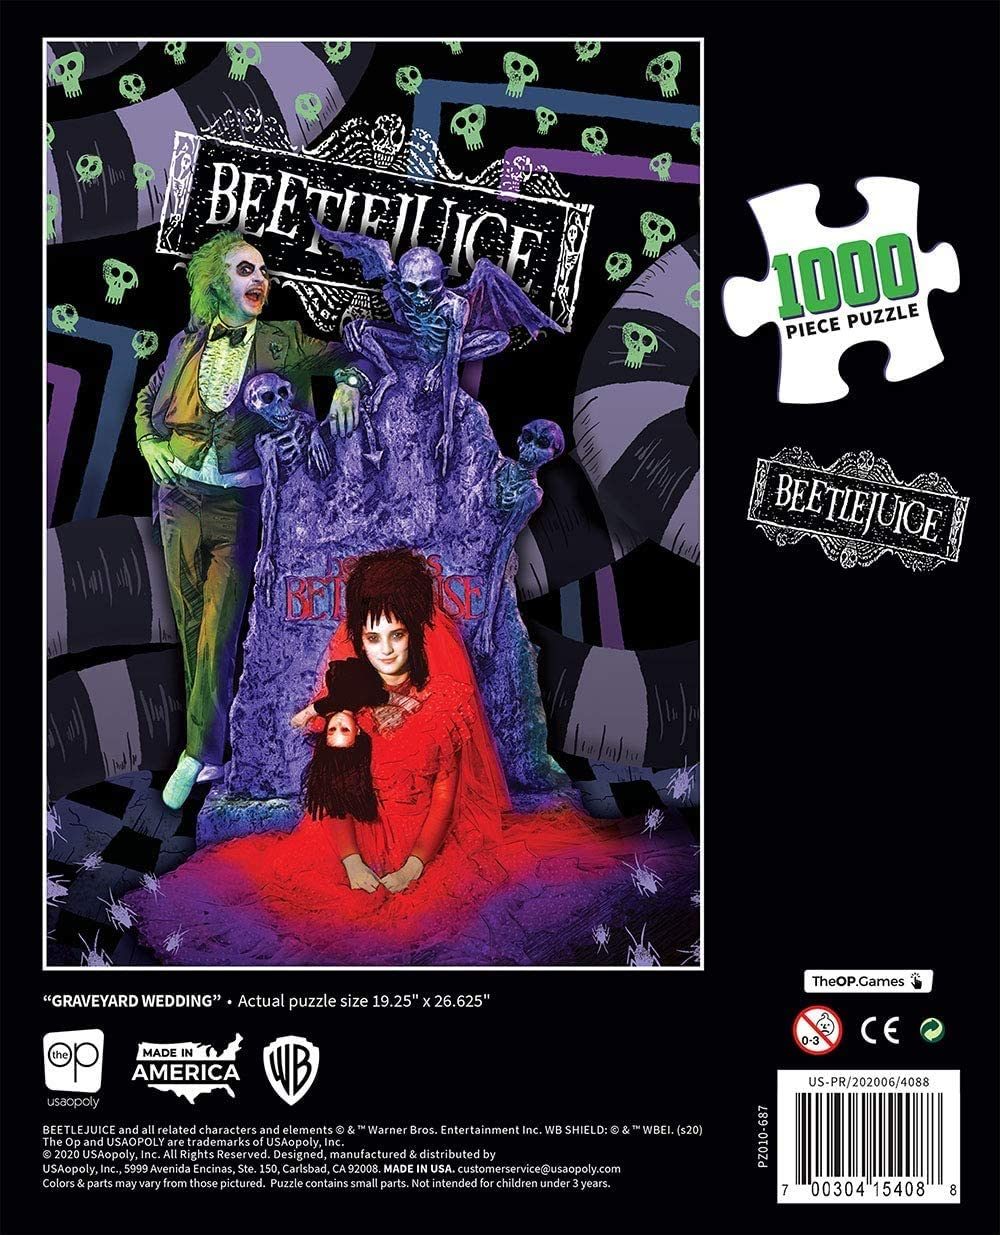 Officially Licensed 1988 Film Beetlejuice Merchandise USAOPOLY Beetlejuice Graveyard Wedding 1000 Piece Jigsaw Puzzle Collectible Puzzle Featuring Beetlejuice and Lydia